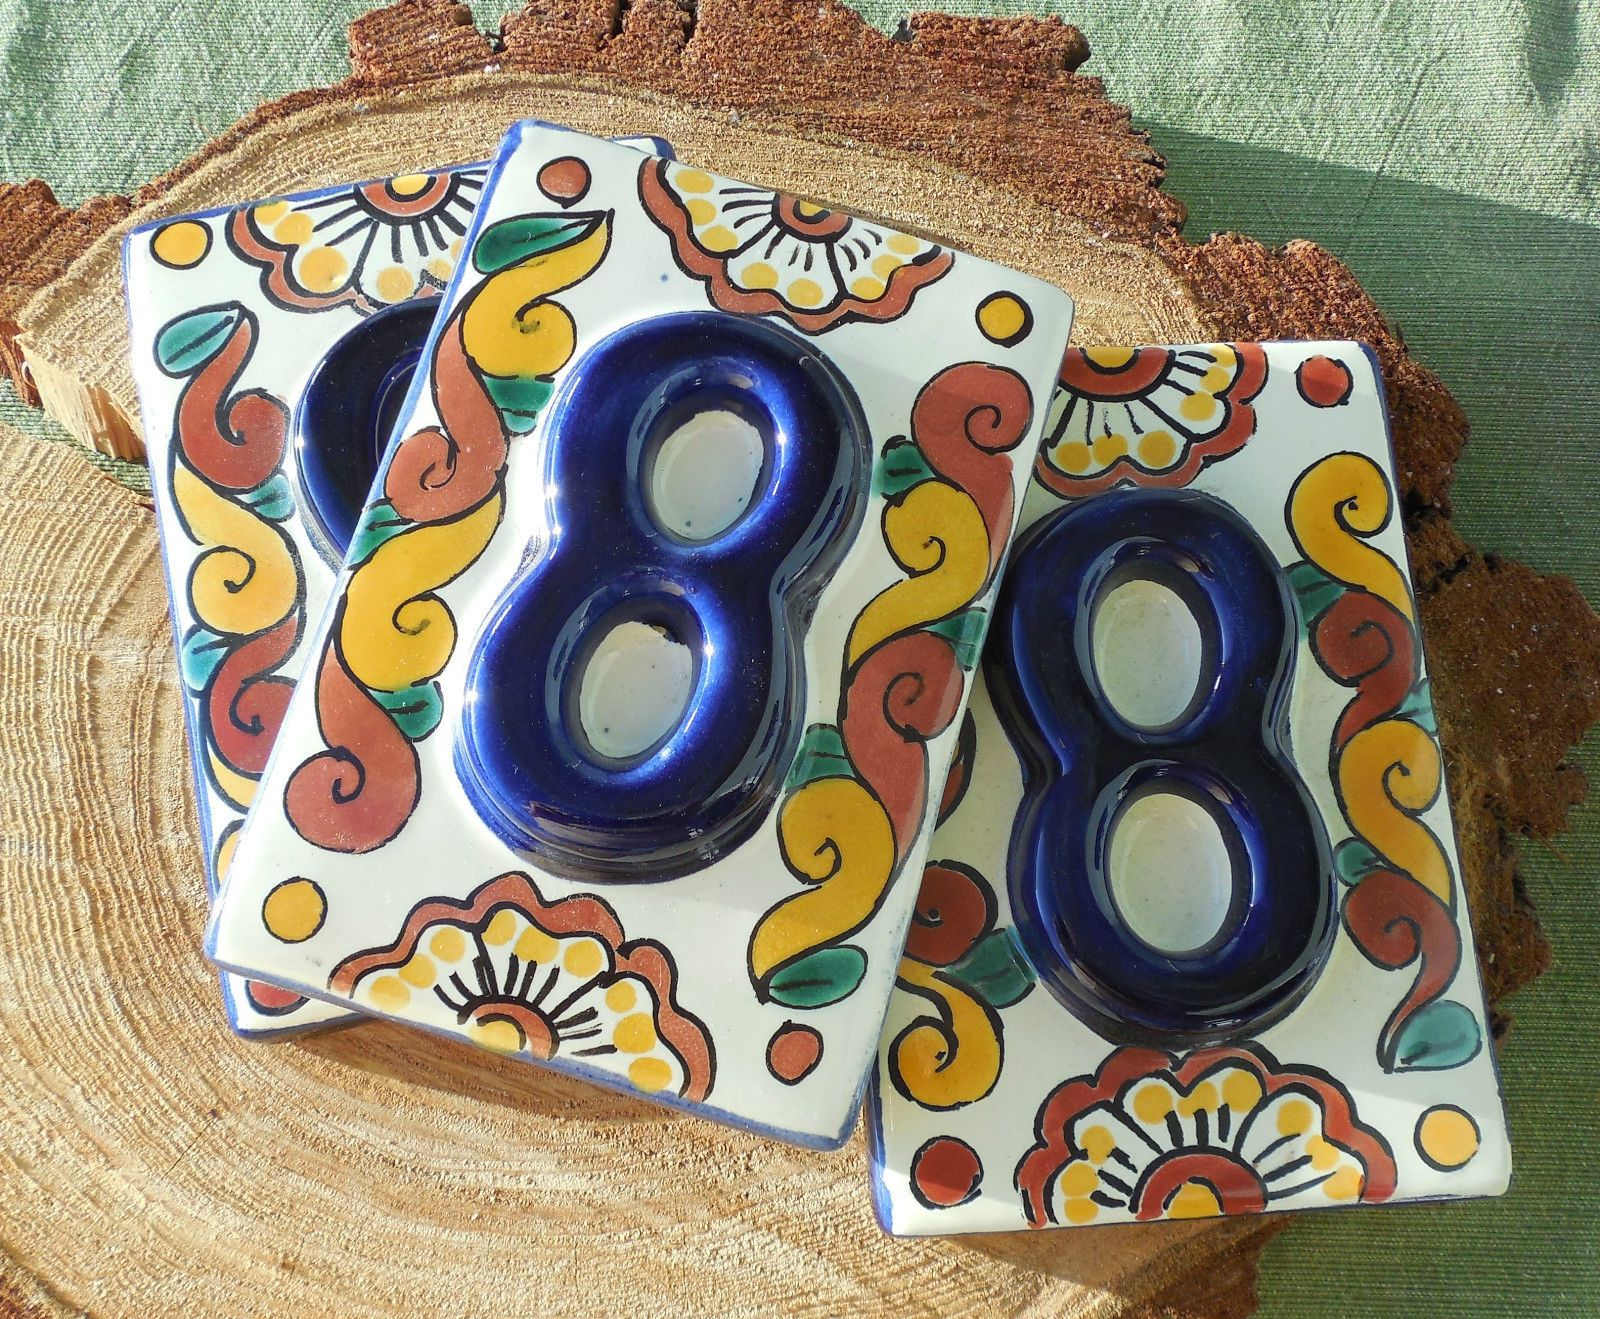 Spanish house number plaques house numbers holder spanish everyone understands about house numbers ceramic while it is a floor tile a ceramic tea strainer kitchen products as wel dailygadgetfo Choice Image